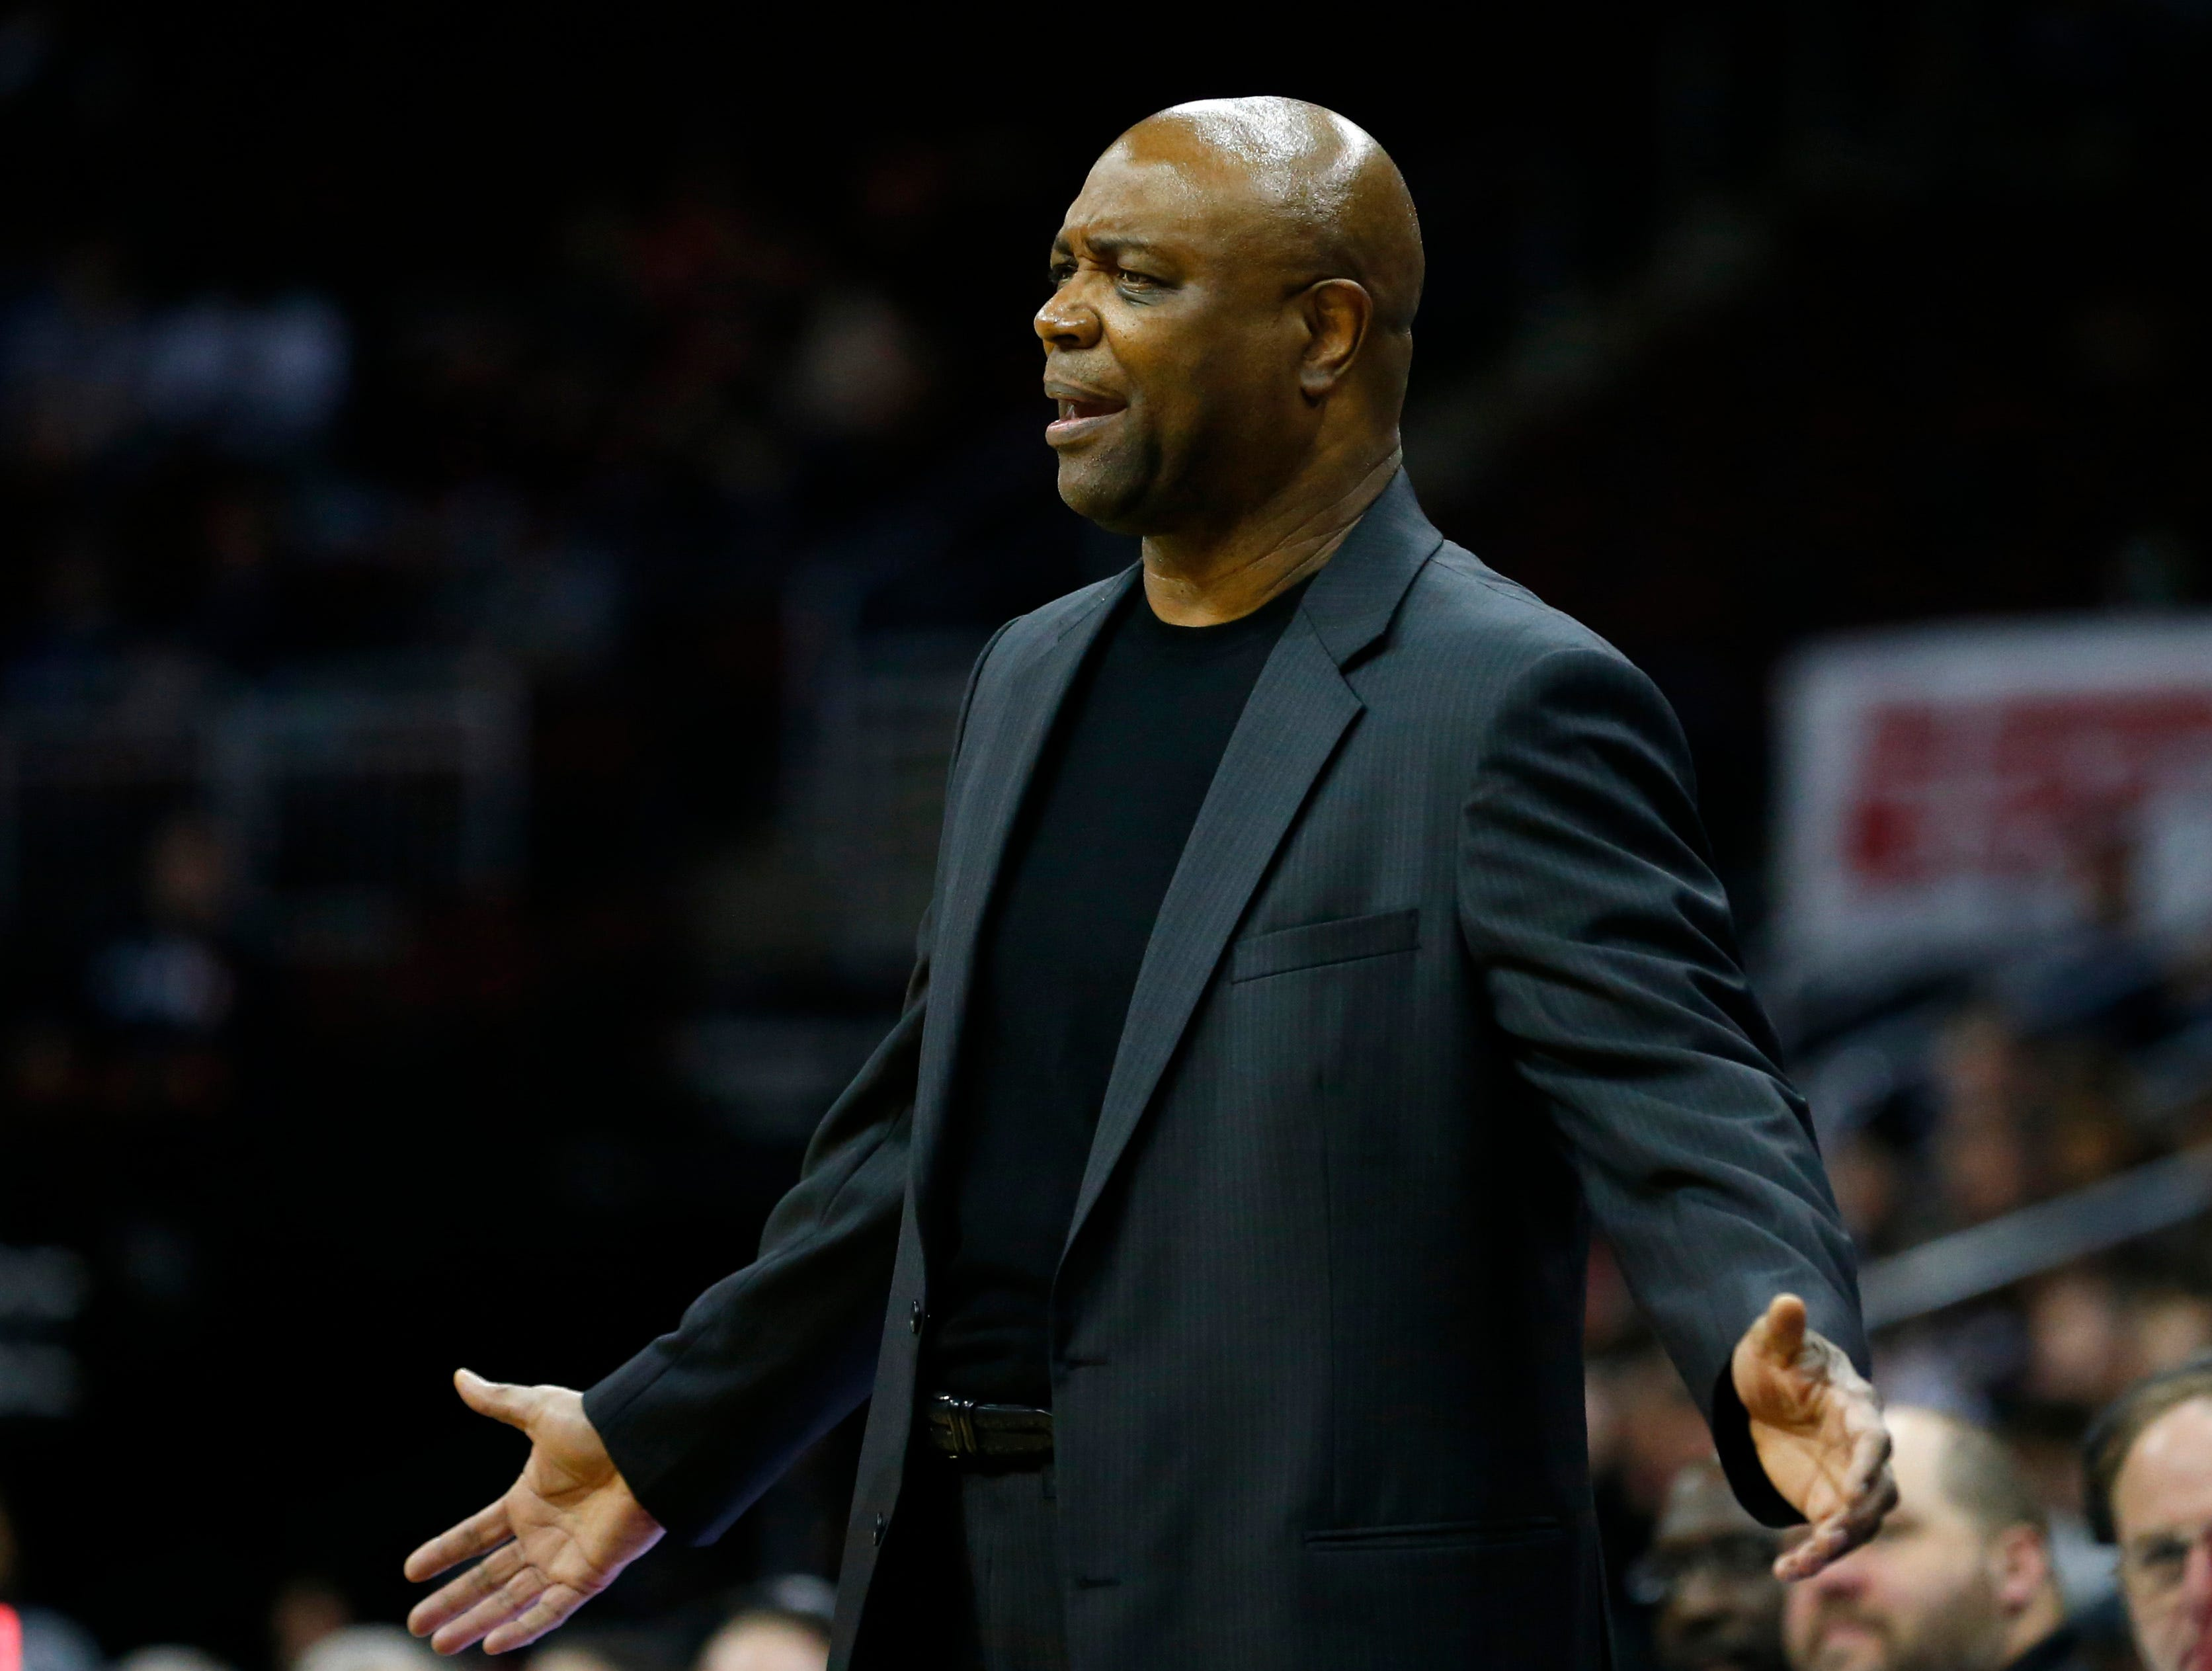 Dec 8, 2018; Newark, NJ, USA; Florida State Seminoles head coach Leonard Hamilton reacts on the sidelines against the Connecticut Huskies during the second half at Prudential Center. Mandatory Credit: Noah K. Murray-USA TODAY Sports